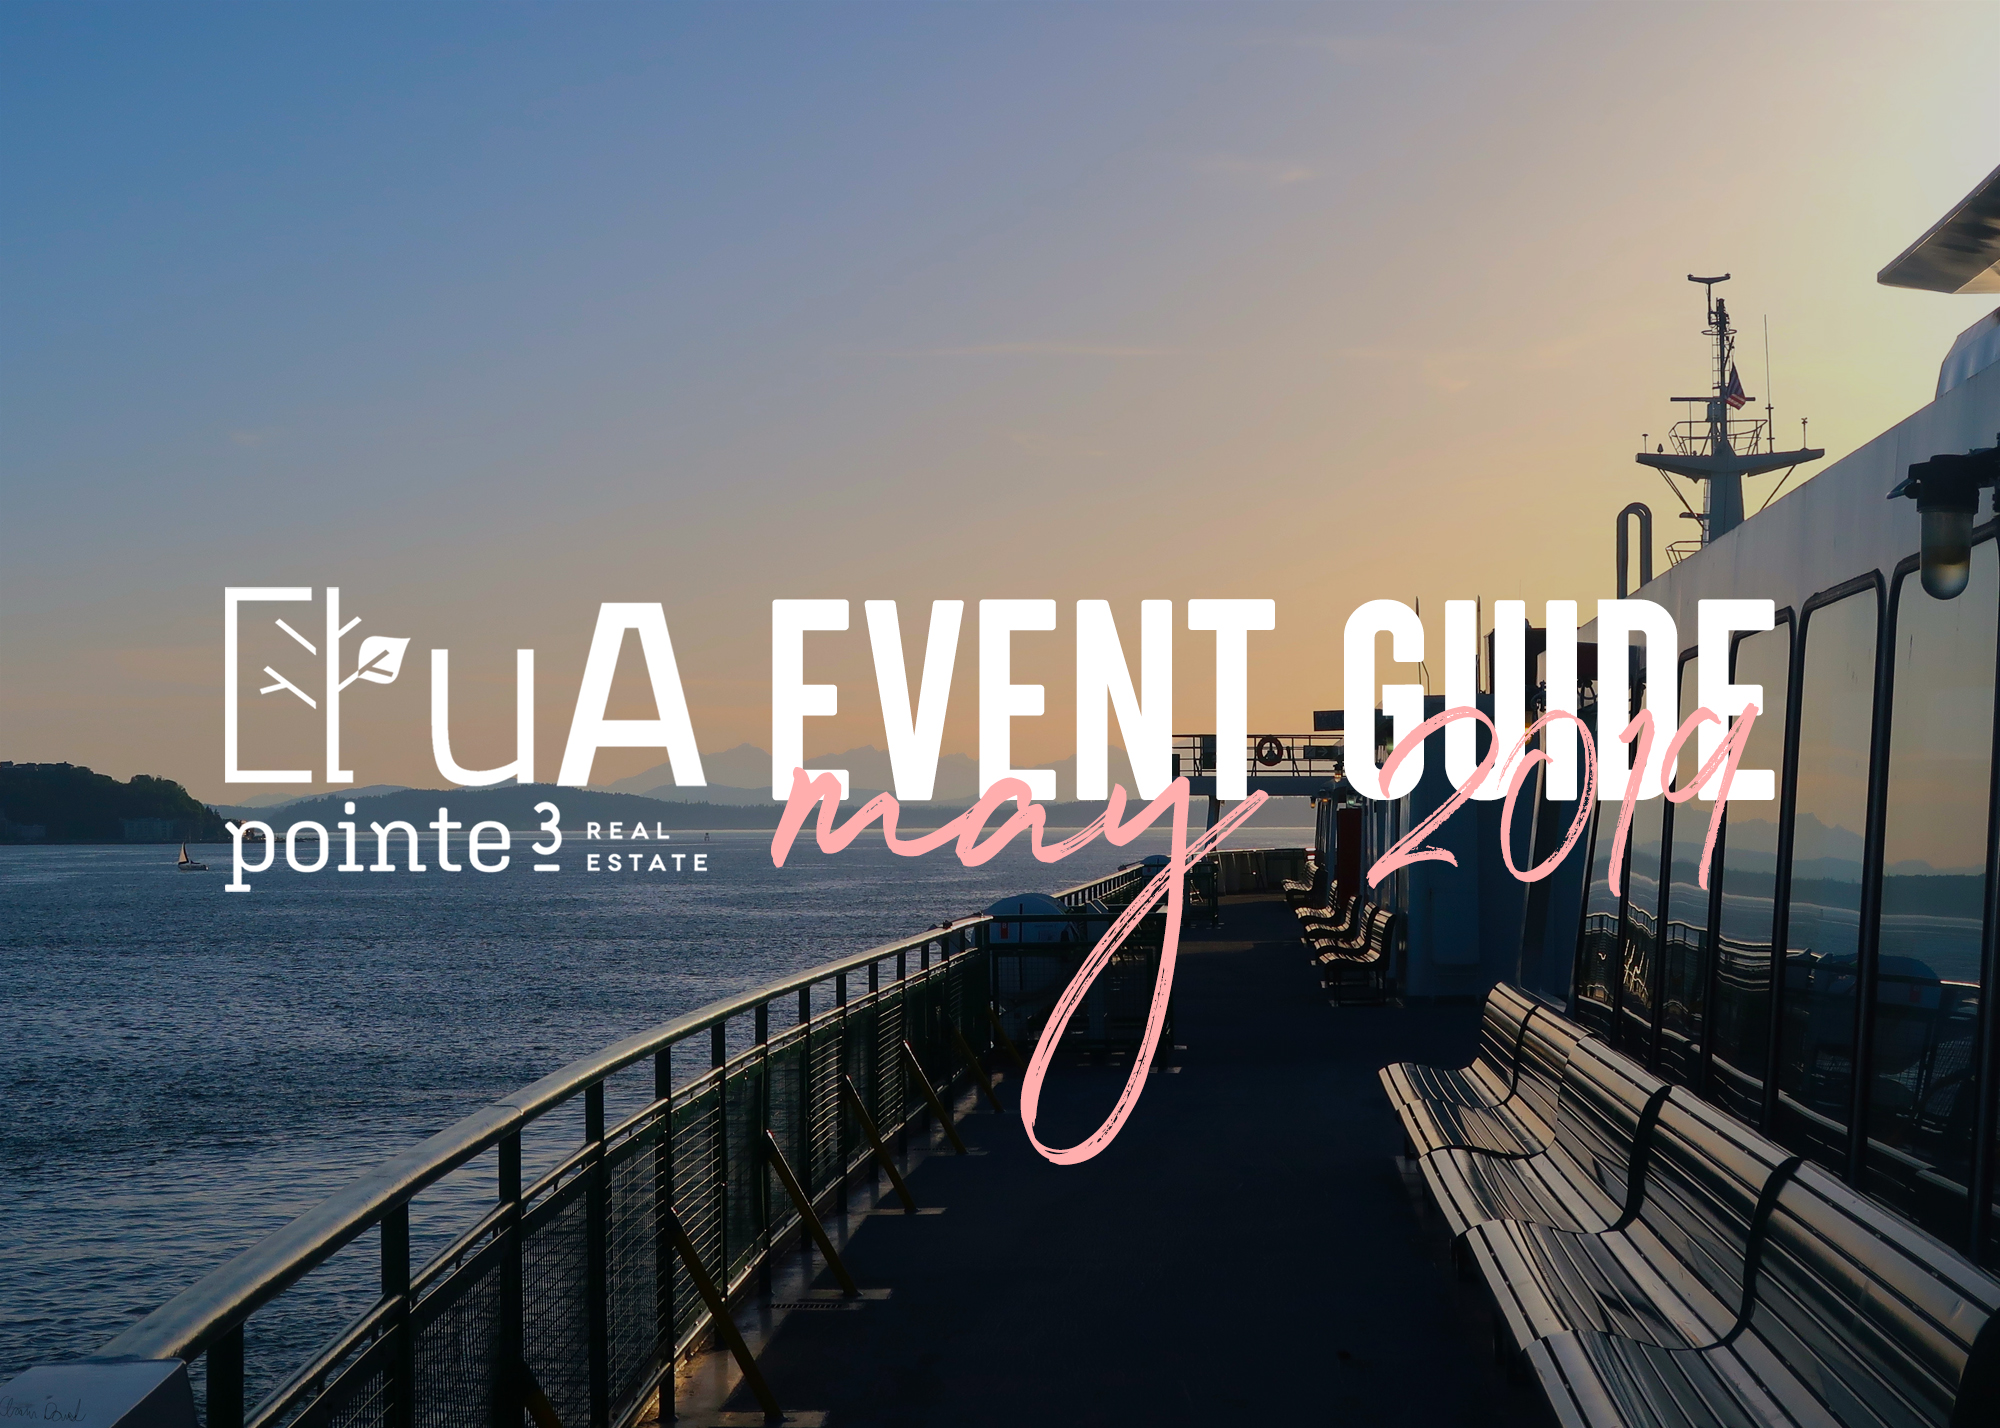 Seattle Event Guide - May 2019